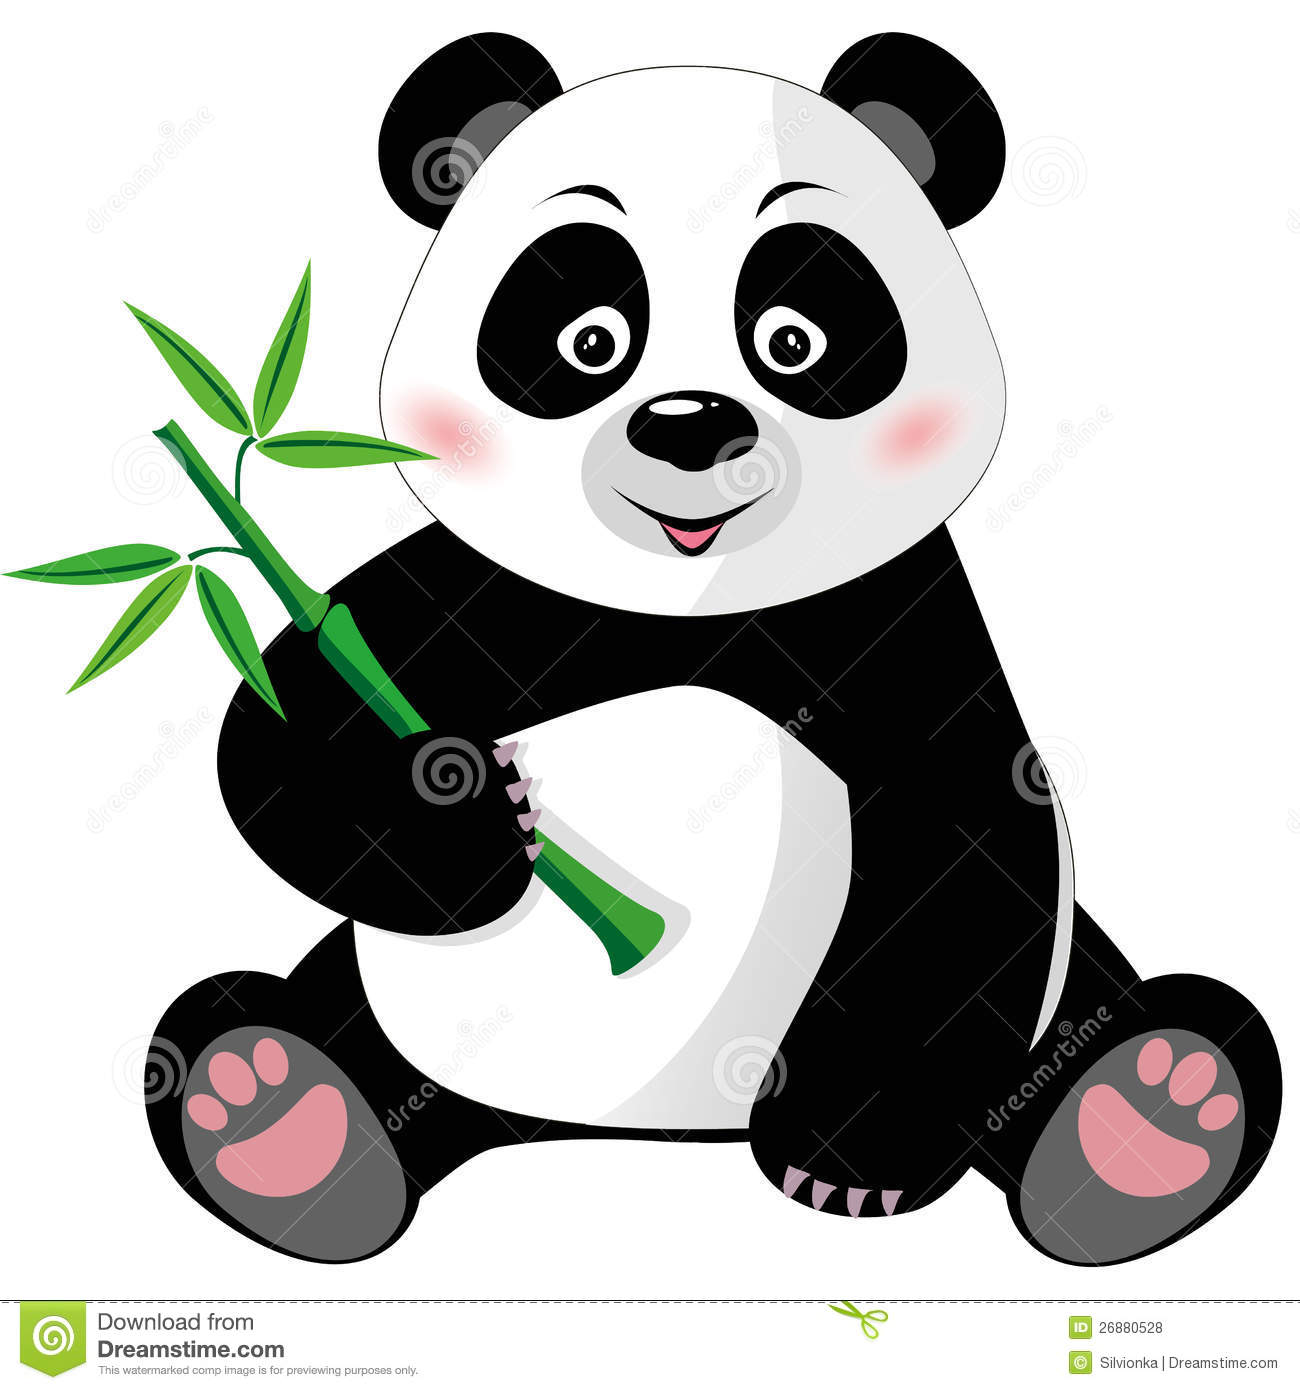 clipart panda website - photo #32